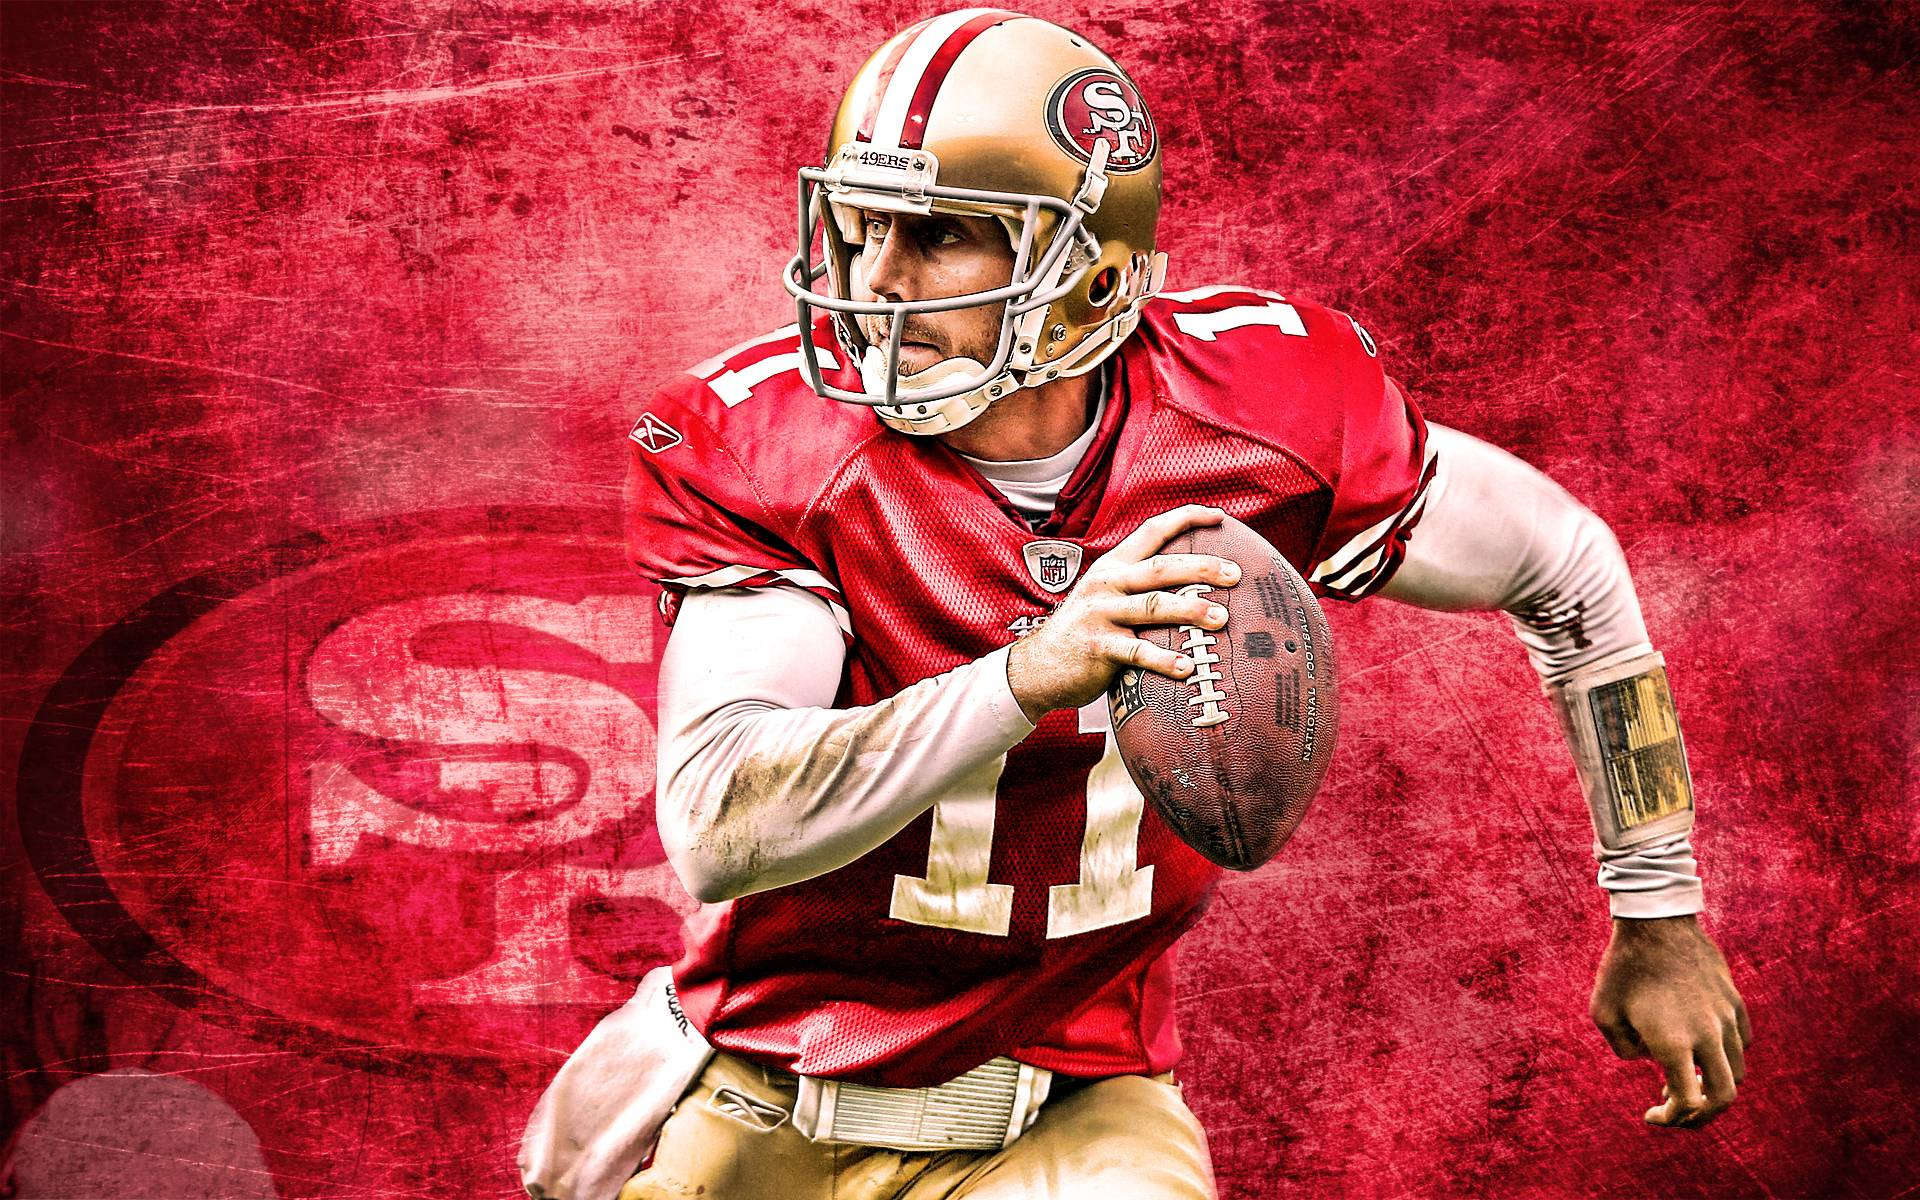 49ers Wallpapers 2015 1920x1200